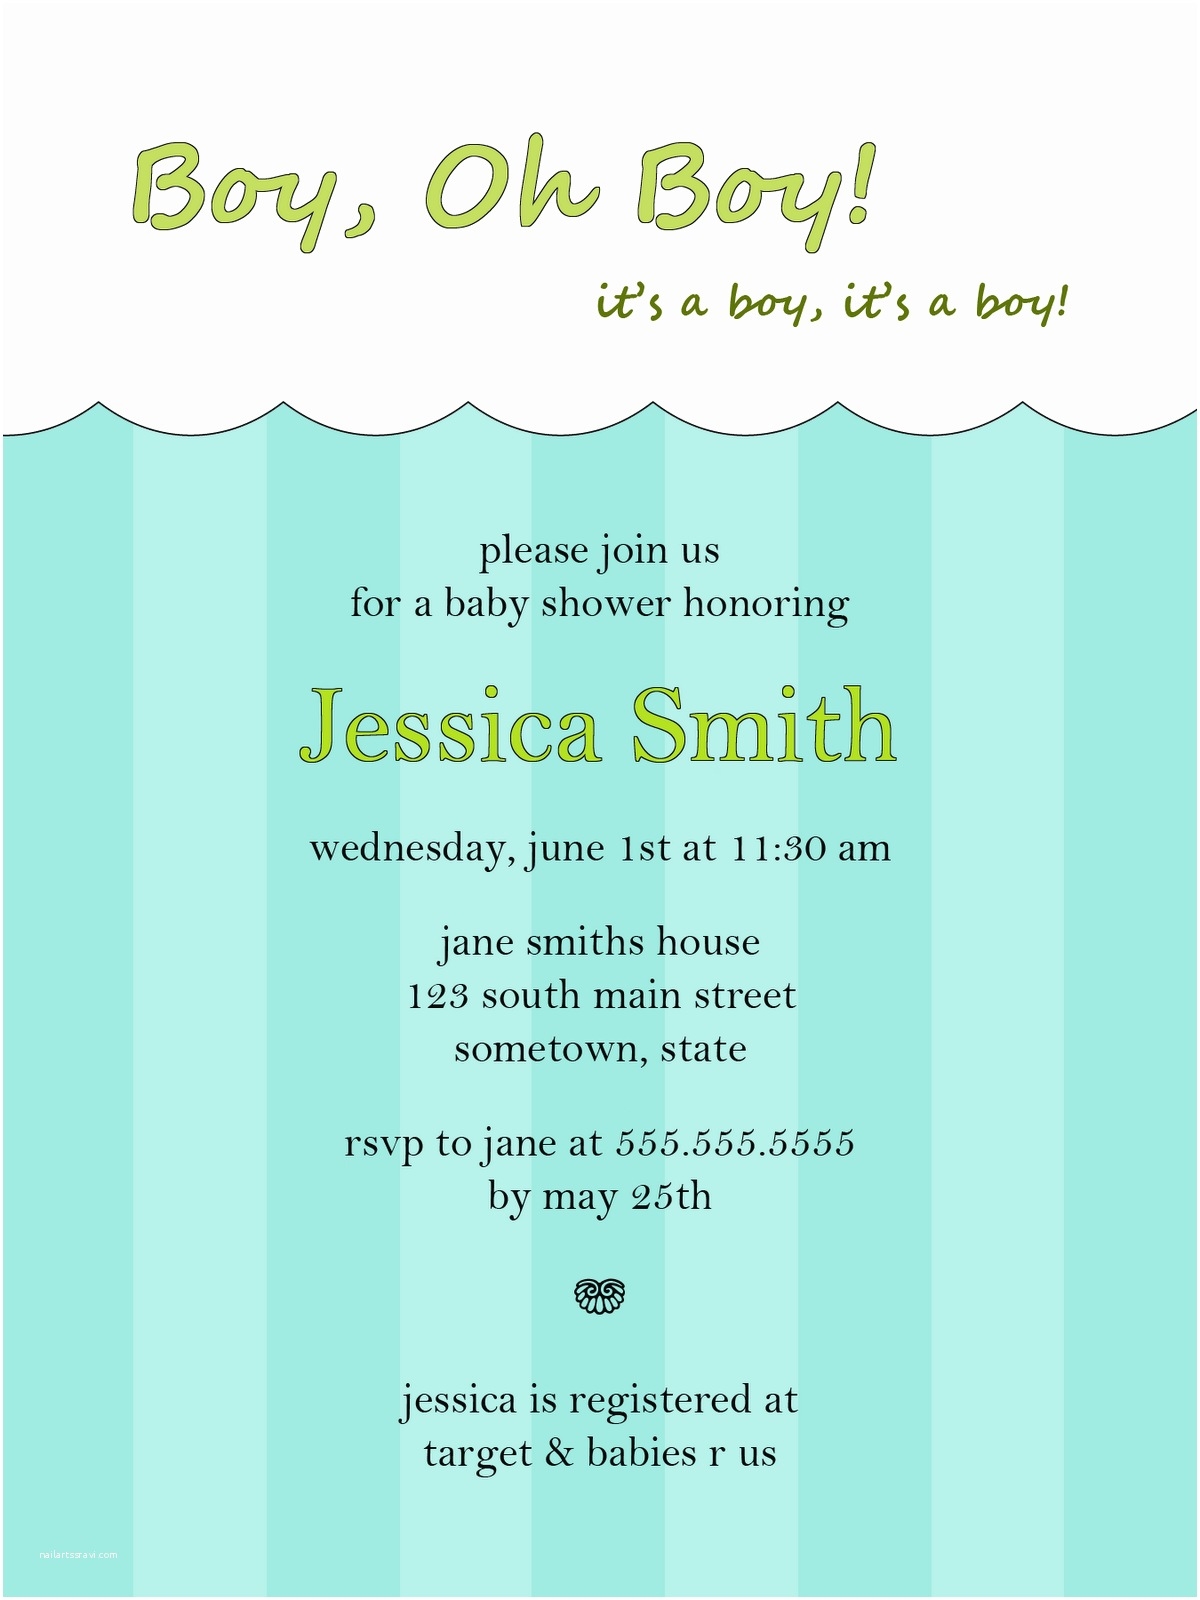 Free Baby Shower Invitations Online Loving Life Designs Free Graphic Designs and Printables